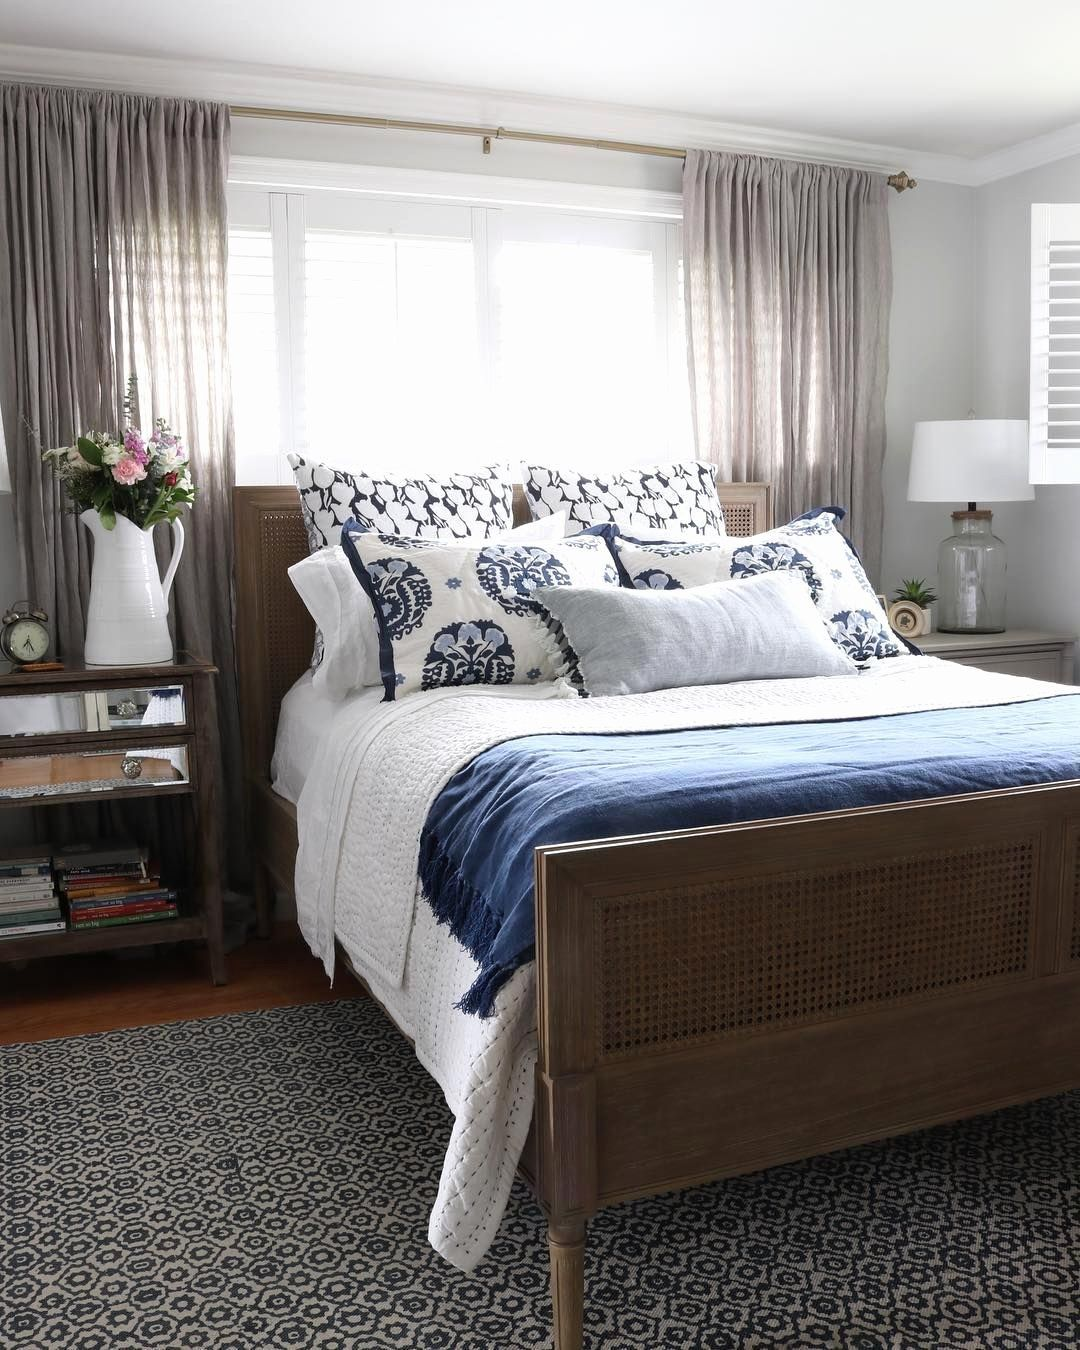 14 X 14 Bedroom Fresh This Isn T The Smallest Master We Ve Ever Had But At 12 X Master Bedroom Layout Master Bedrooms Decor Small Master Bedroom